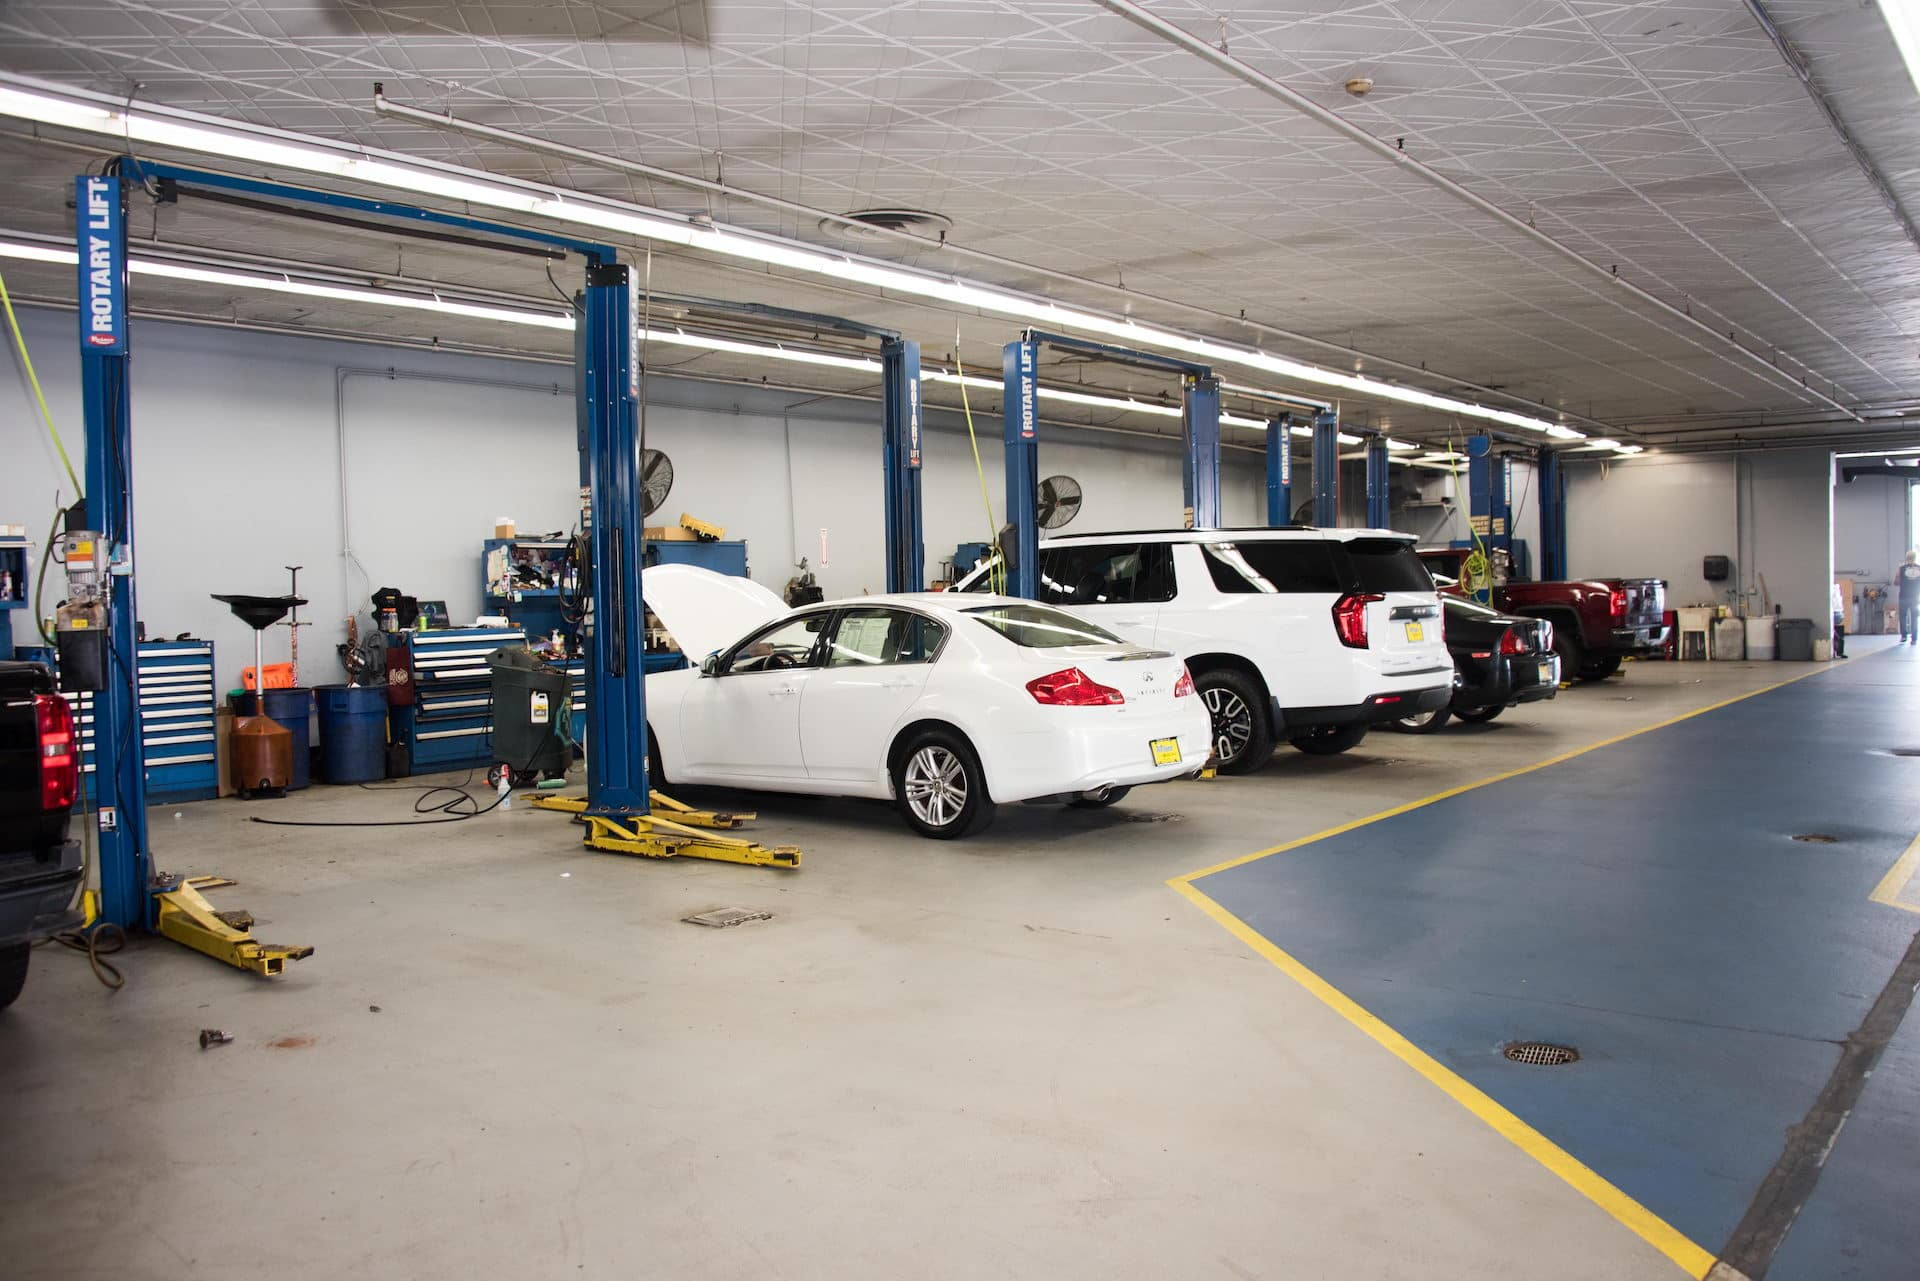 Vehicles being worked on in the service center.